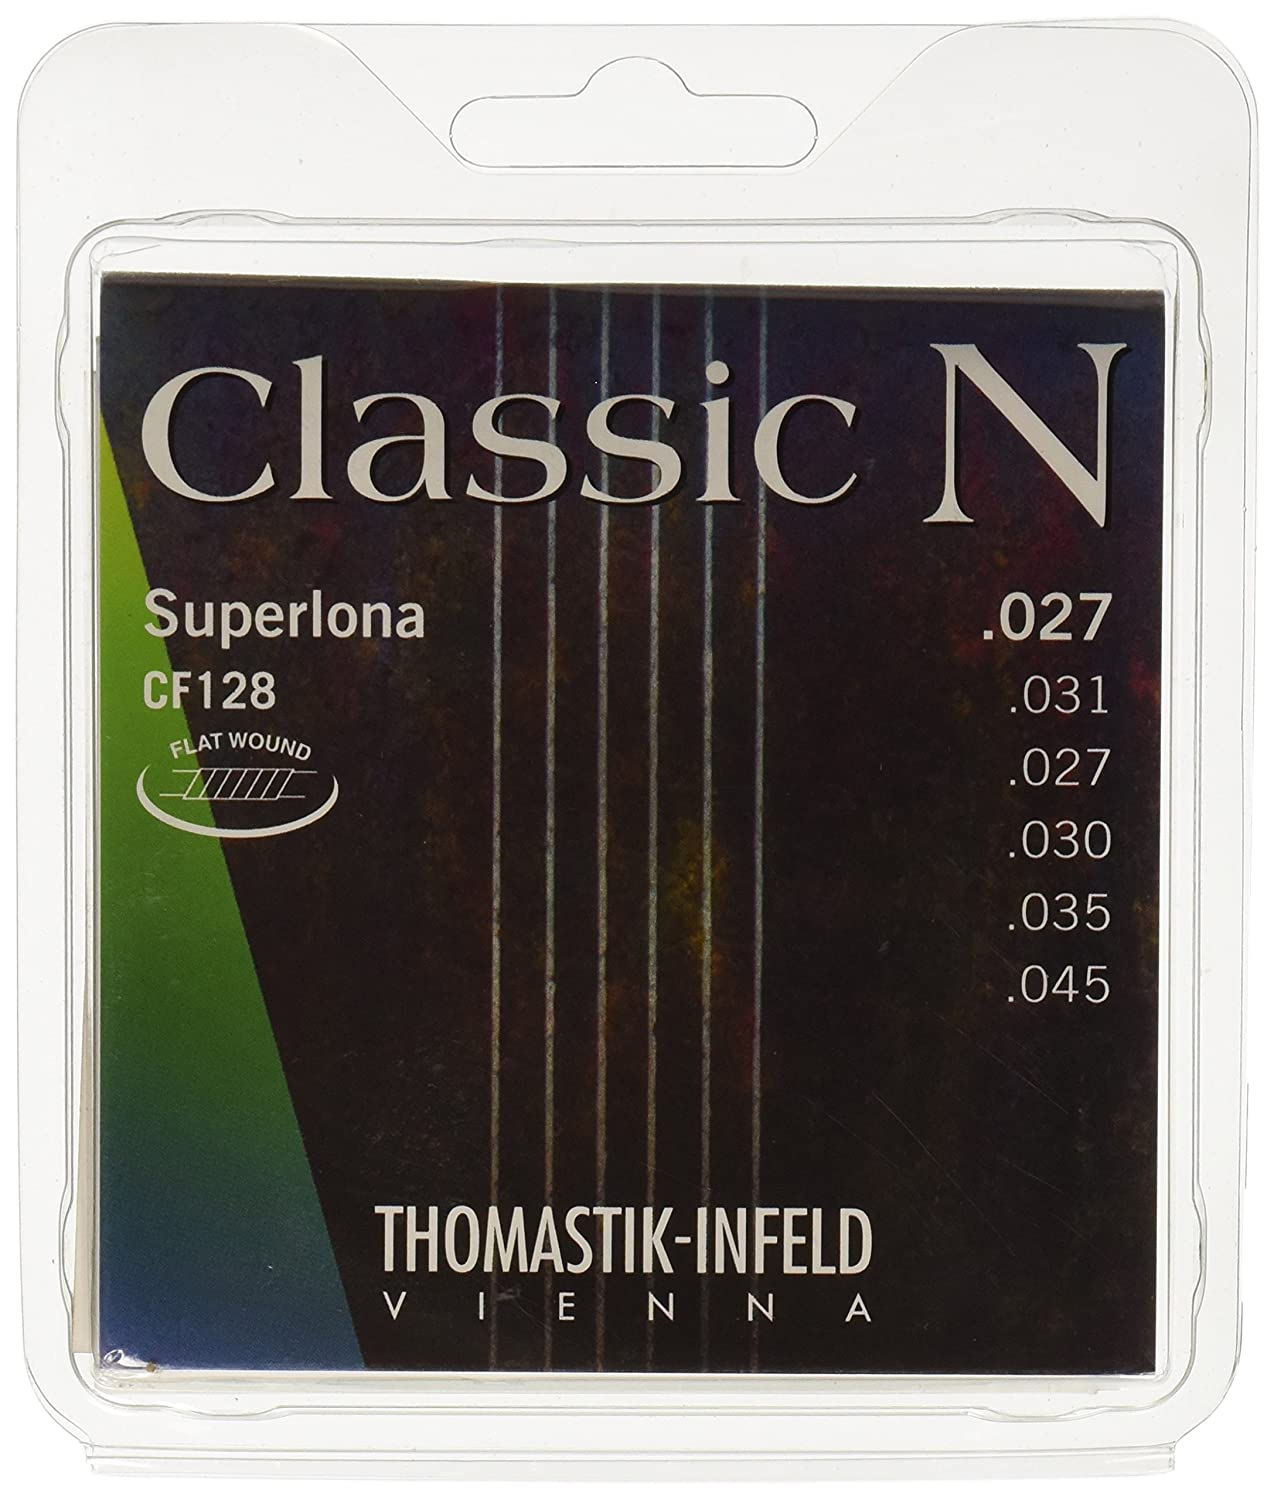 Thomastik-Infeld CF128 Classical Guitar Strings: Classic N Series 6 String Set (Wound G) E, B, G, D, A, E Set